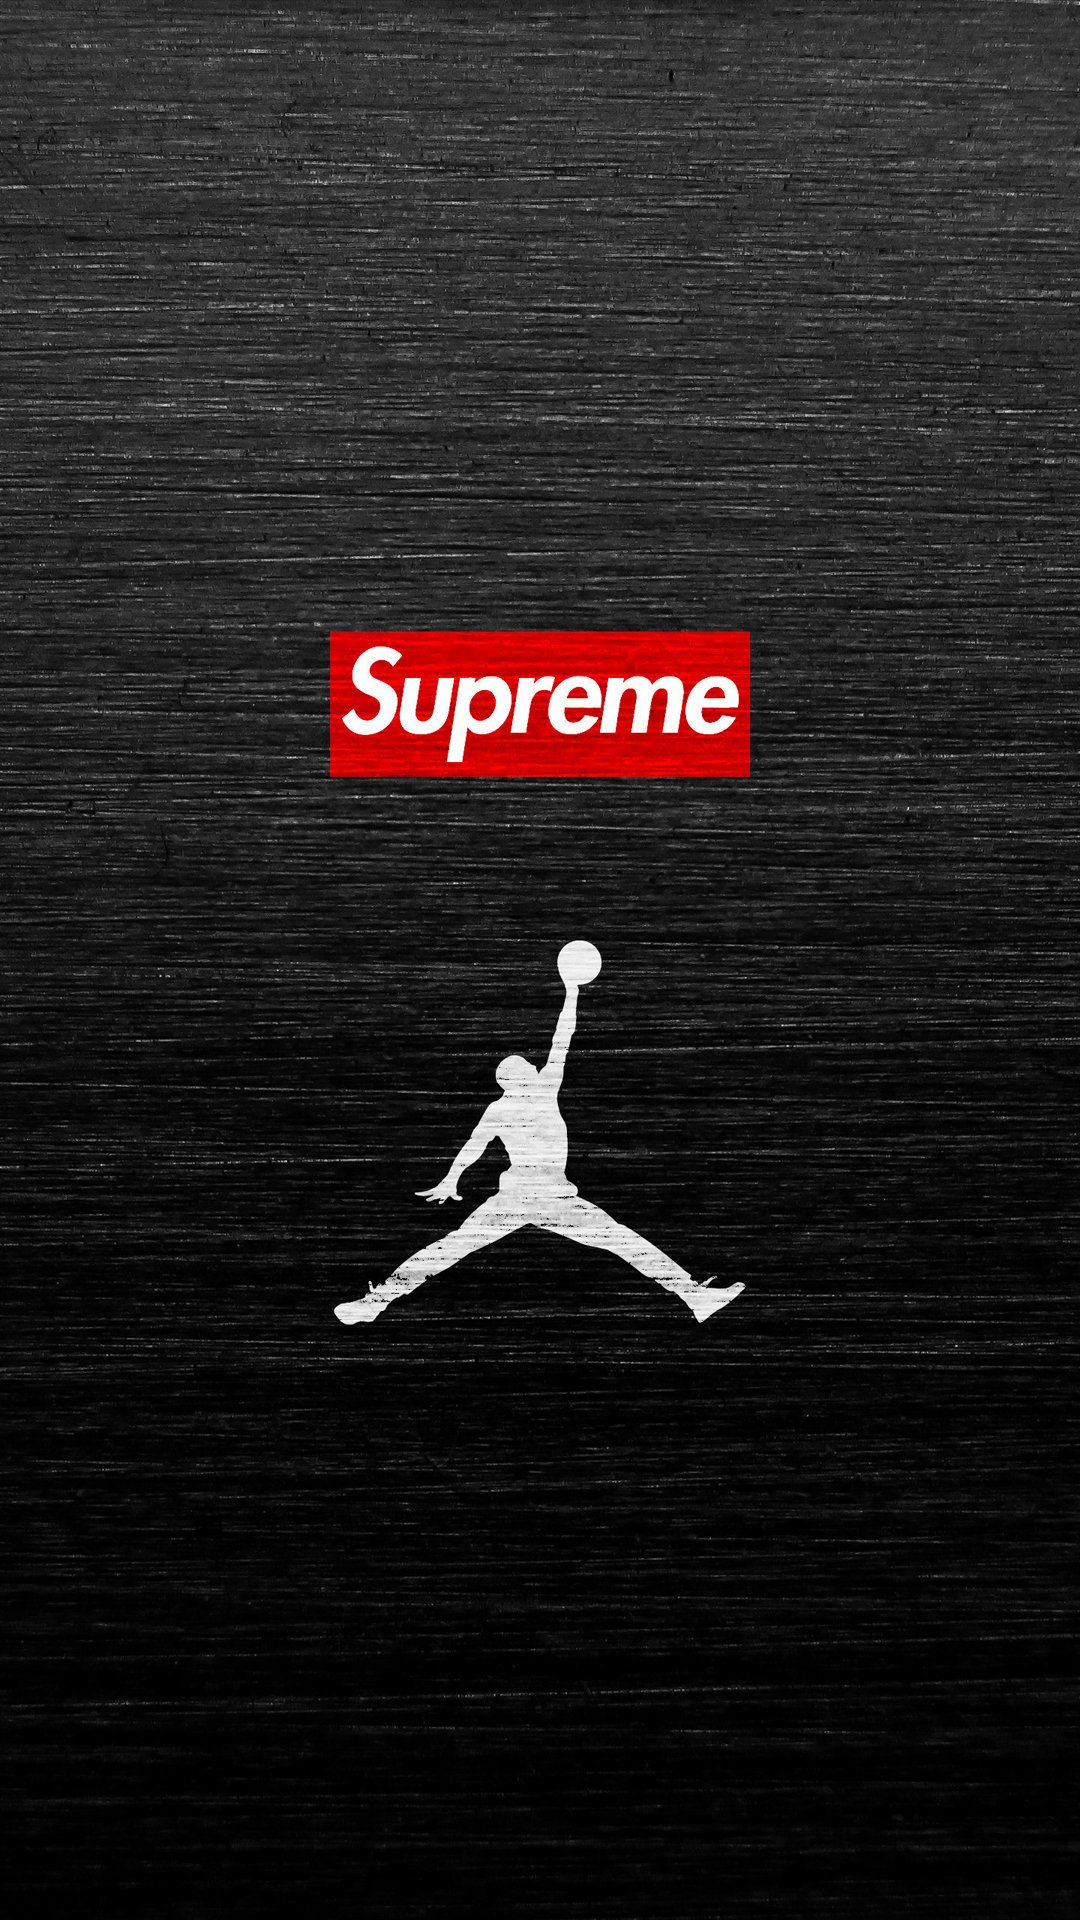 Air Jordan Supreme Wallpaper   AuthenticSupremecom 1080x1920